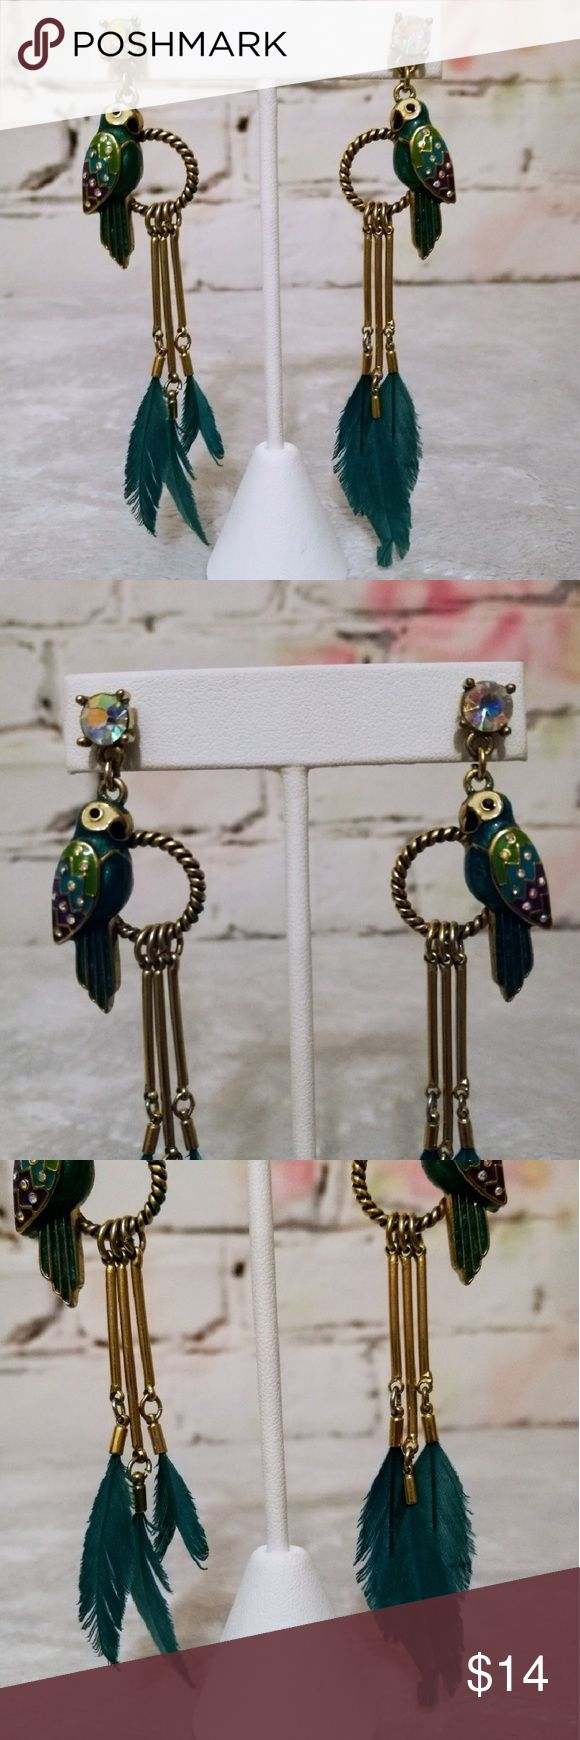 """🐦♥️ Betsey Johnson Jungle Fever Parrot Earrings Betsey Johnson Jungle Fever Parrot Earrings  - these earrings are definite standout and will get a lot of notice! - Gold earrings with green pretty feathers!  - iridescent stone on top  - multicoloured parrot wings with small stones for extra pop - 4"""" from top to bottom - earrings in great shape, I do not have the original card they came on. Betsey Johnson Jewelry Earrings"""